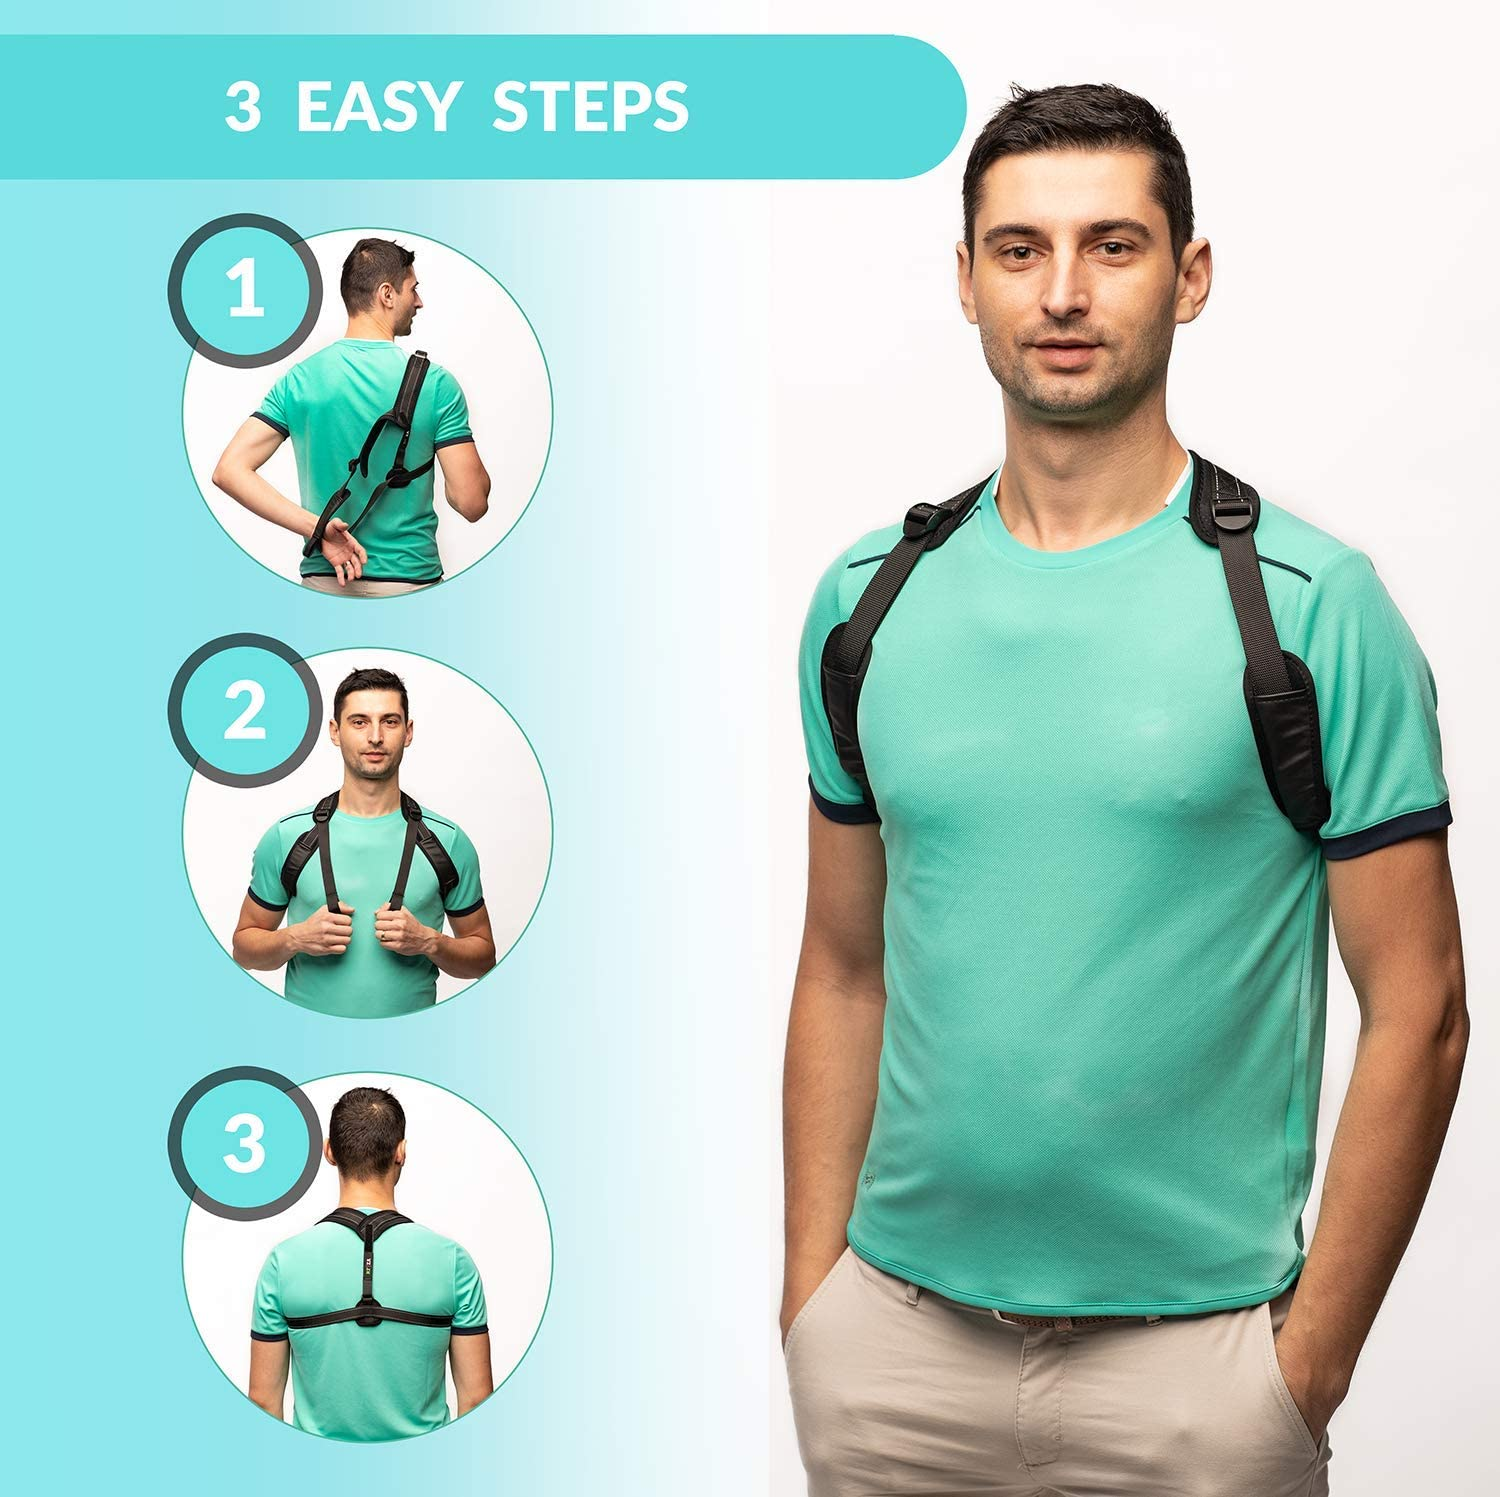 Posture Corrector Device 28-50 BPC Utilites Posture Support for Women /& Men Chest Corrects Slouching Hunching /& Bad Posture Posture Corrector Under Clothes for Women and Men